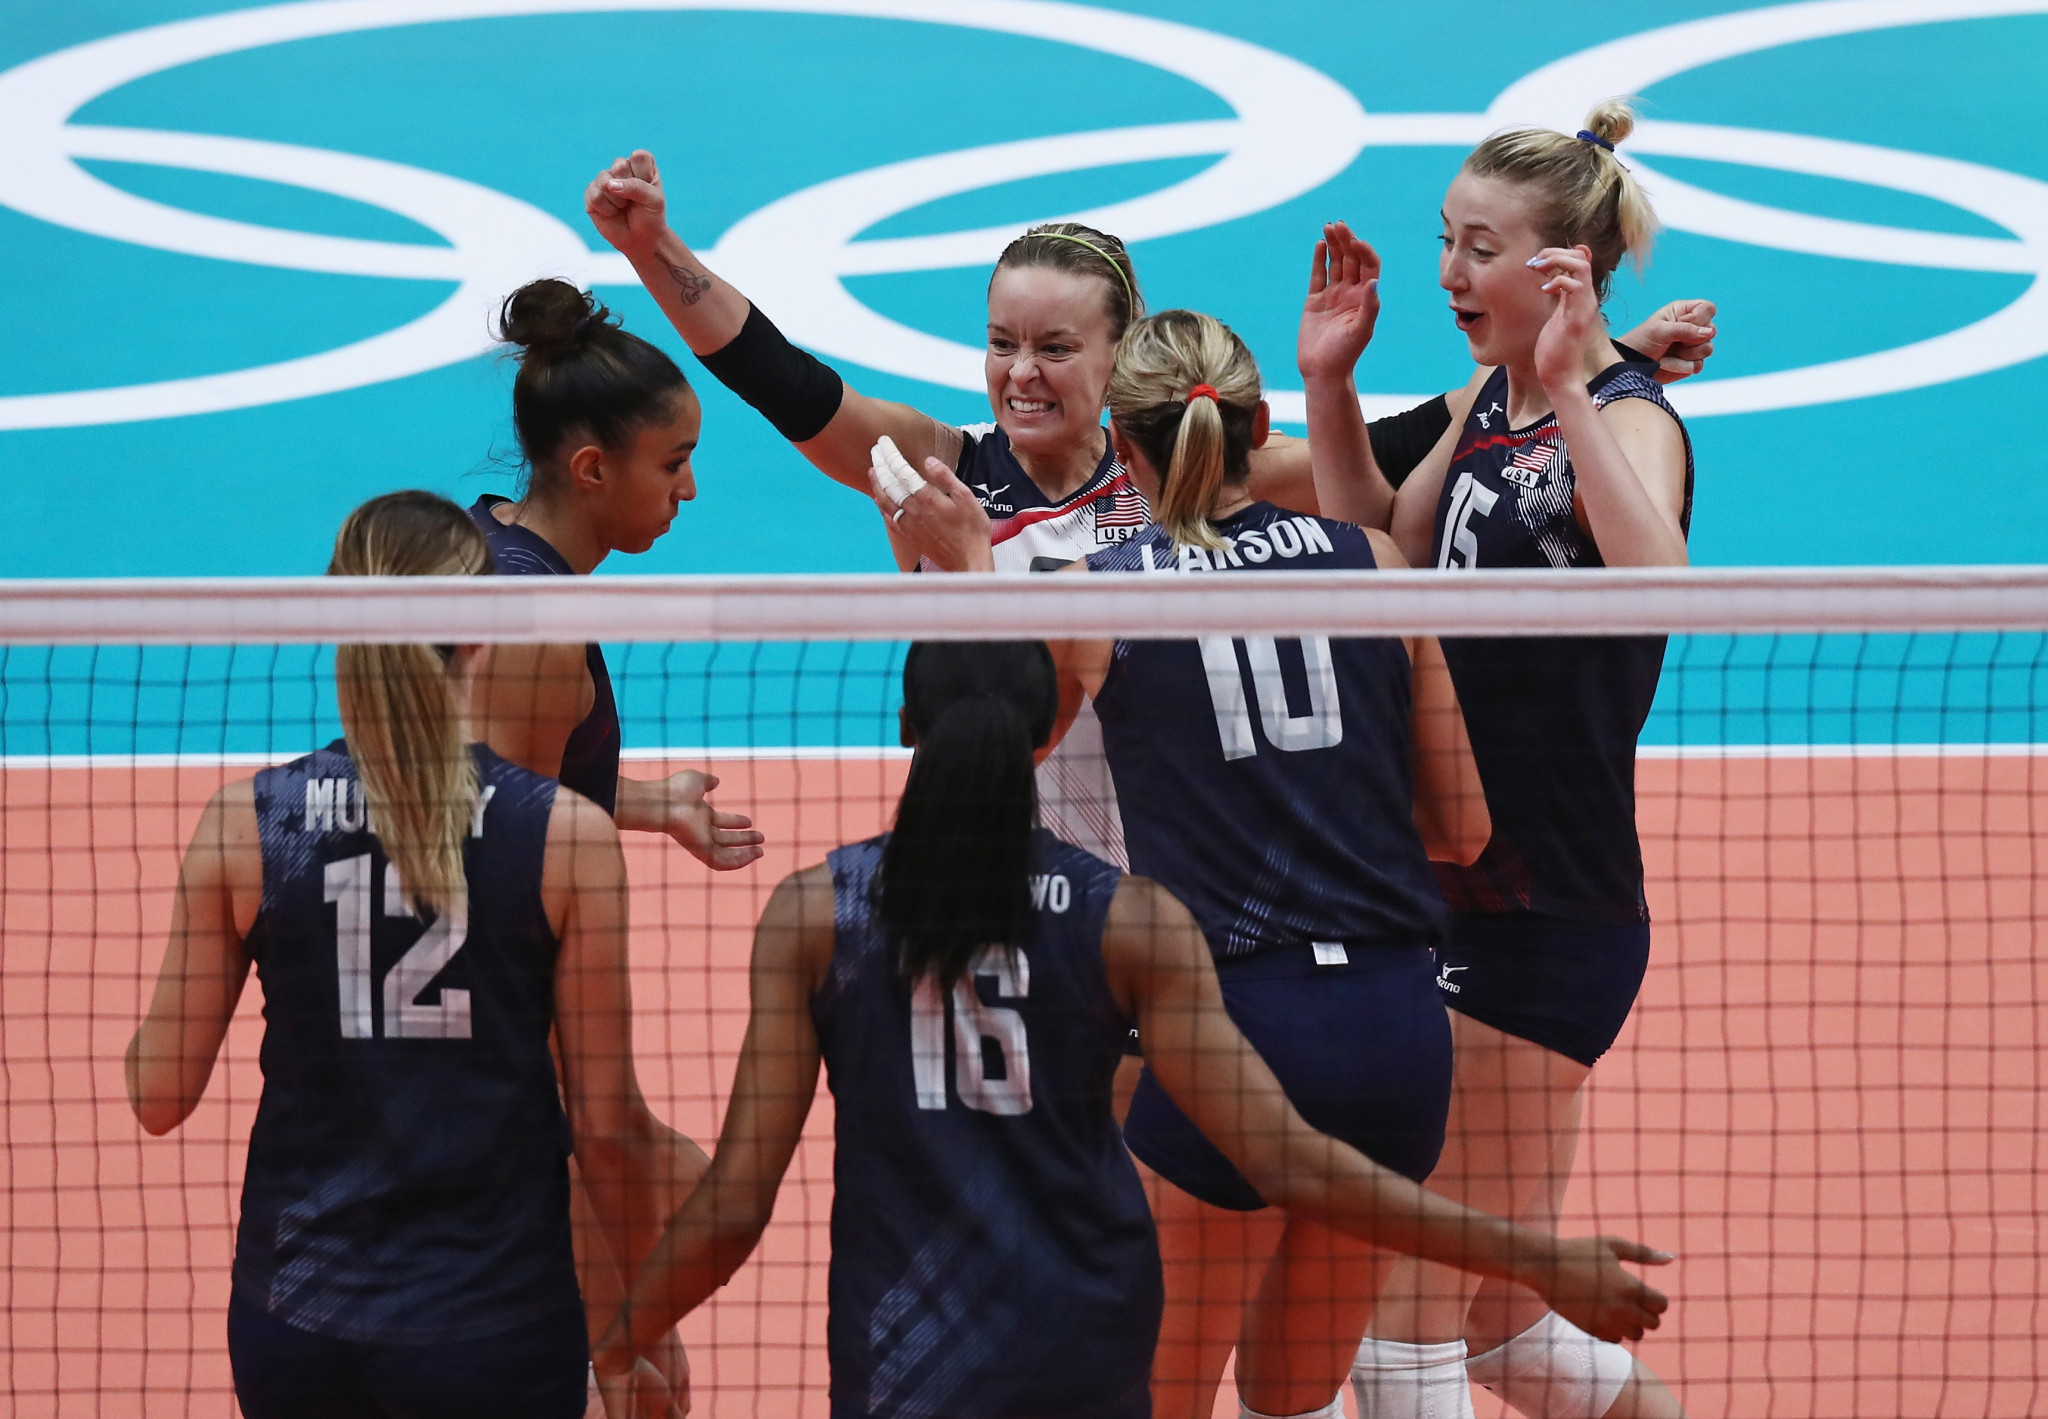 China seeking record-breaking fifth FIVB Women's World Cup title